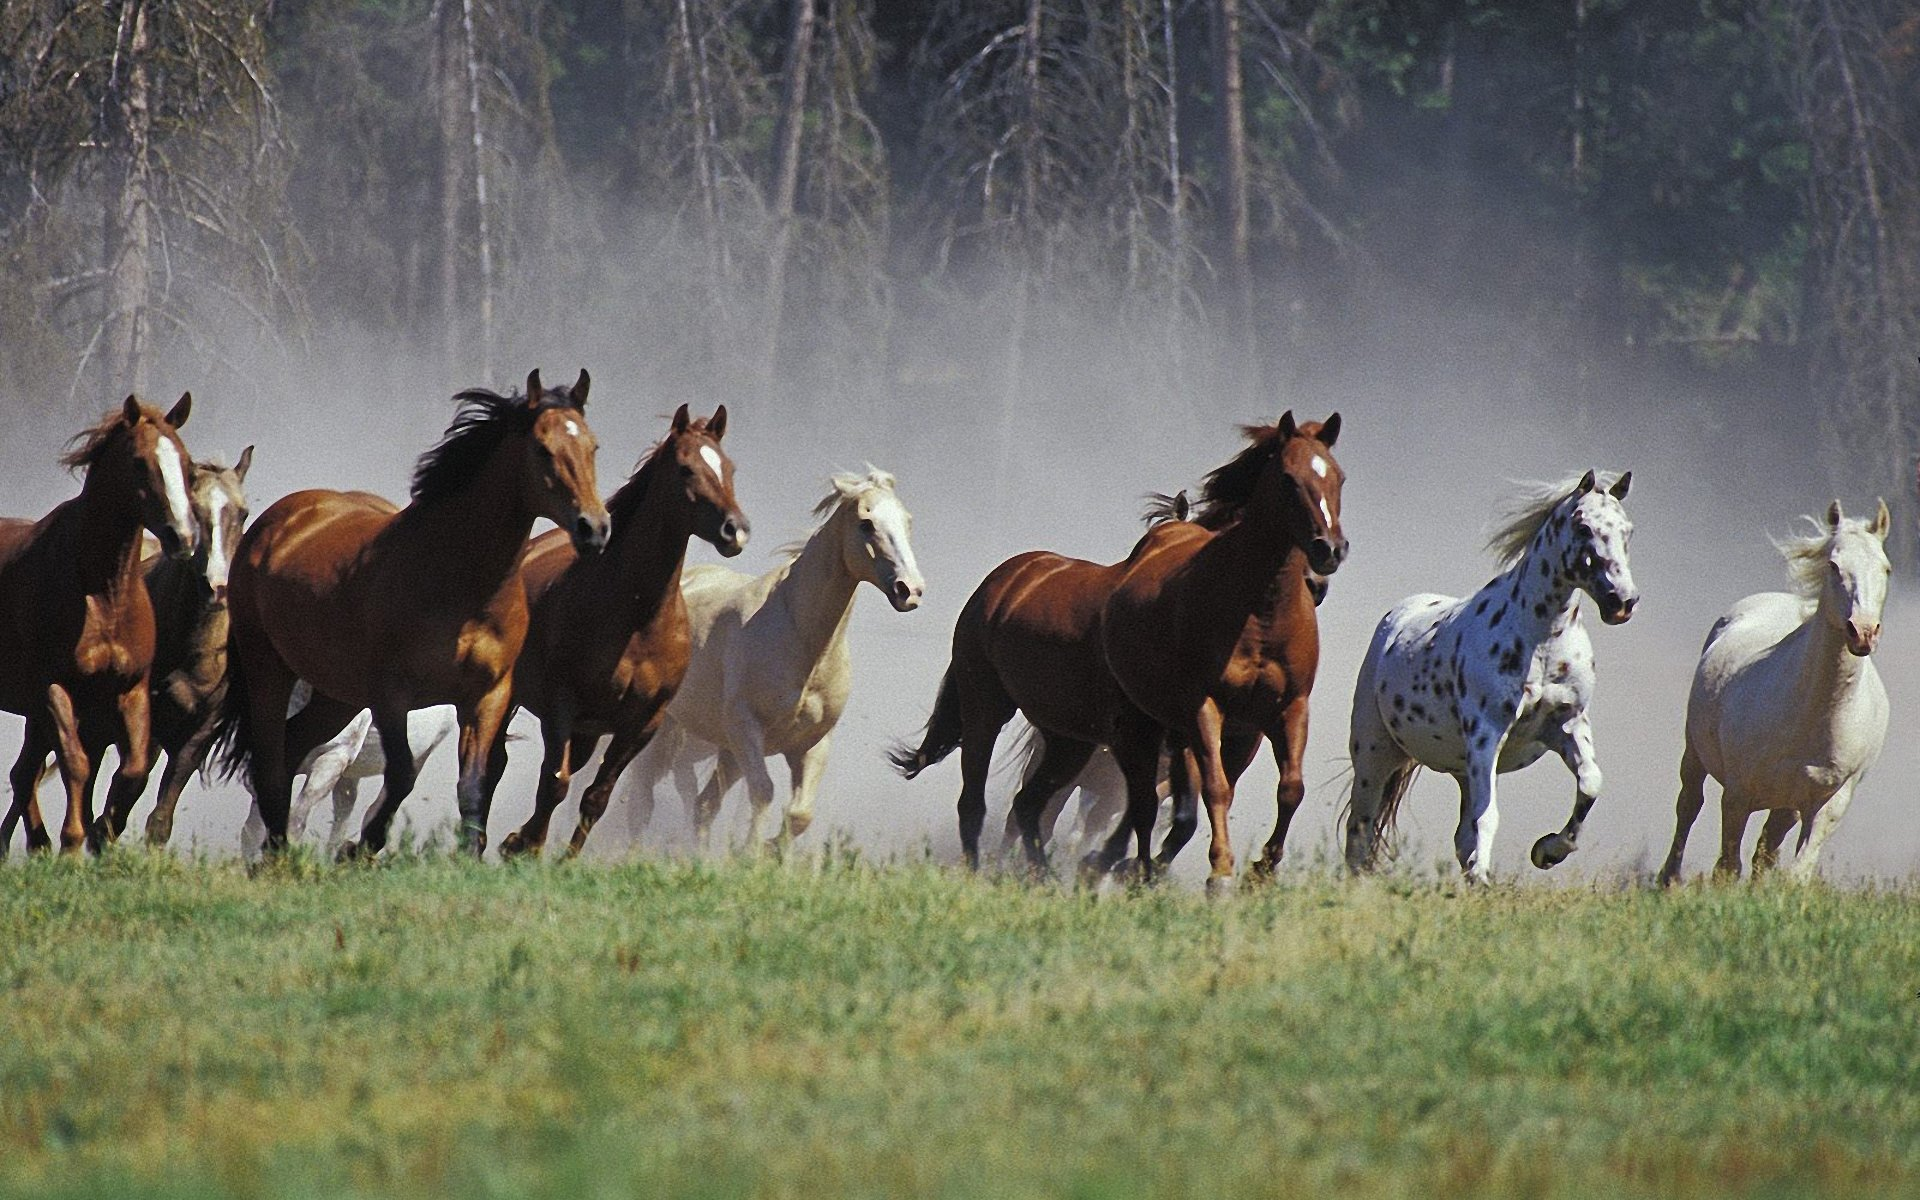 Great Wallpaper Horse Country - running-horse-picture_109523-1920x1200  Perfect Image Reference_809524.jpg